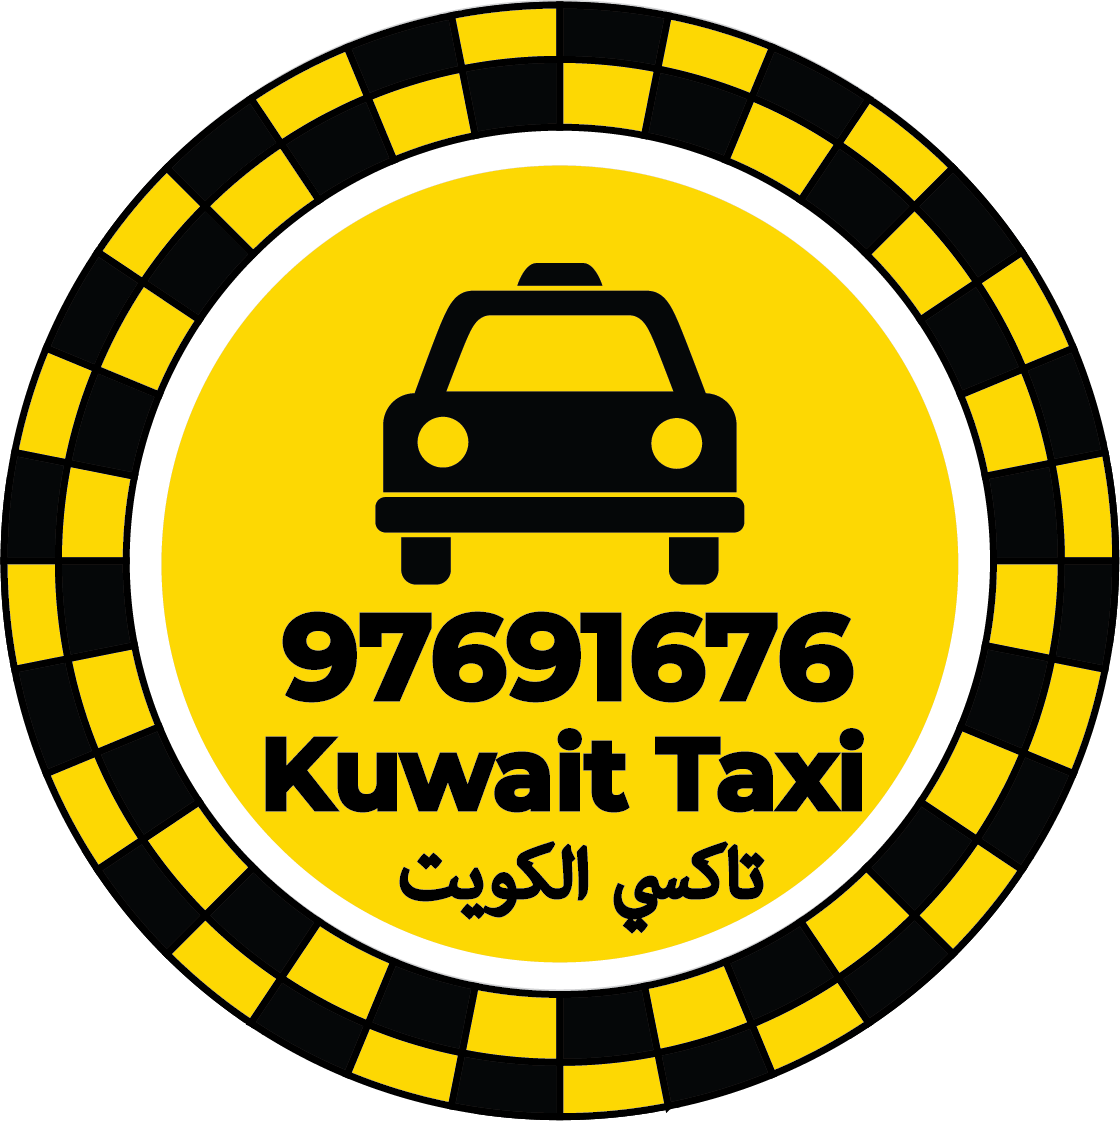 Yellow Cab Taxi Kuwait